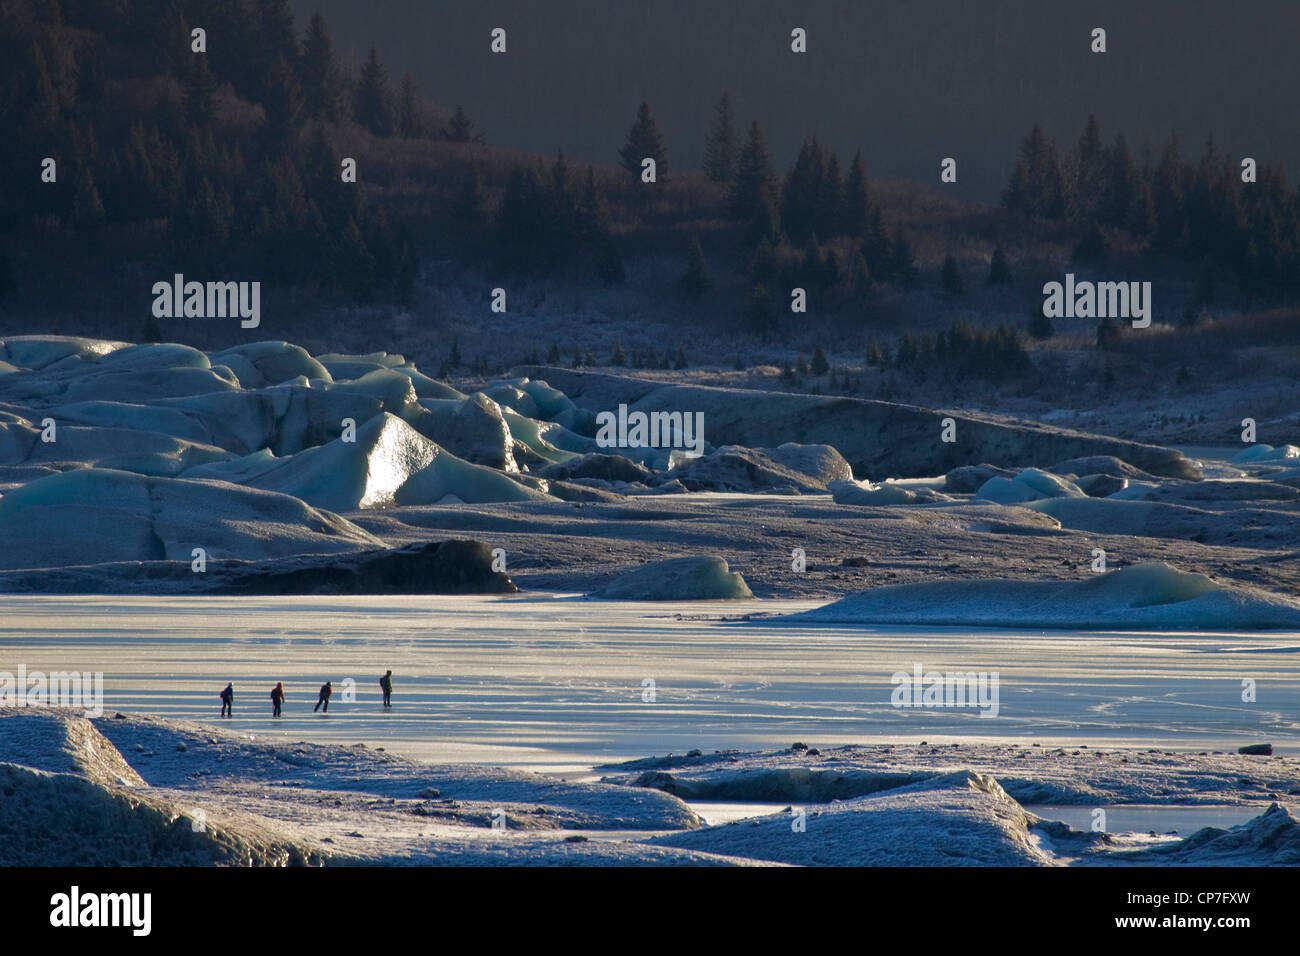 Family of ice skaters near Sheridan Glacier with icebergs in the background, Cordova, Southcentral Alaska, Winter - Stock Image